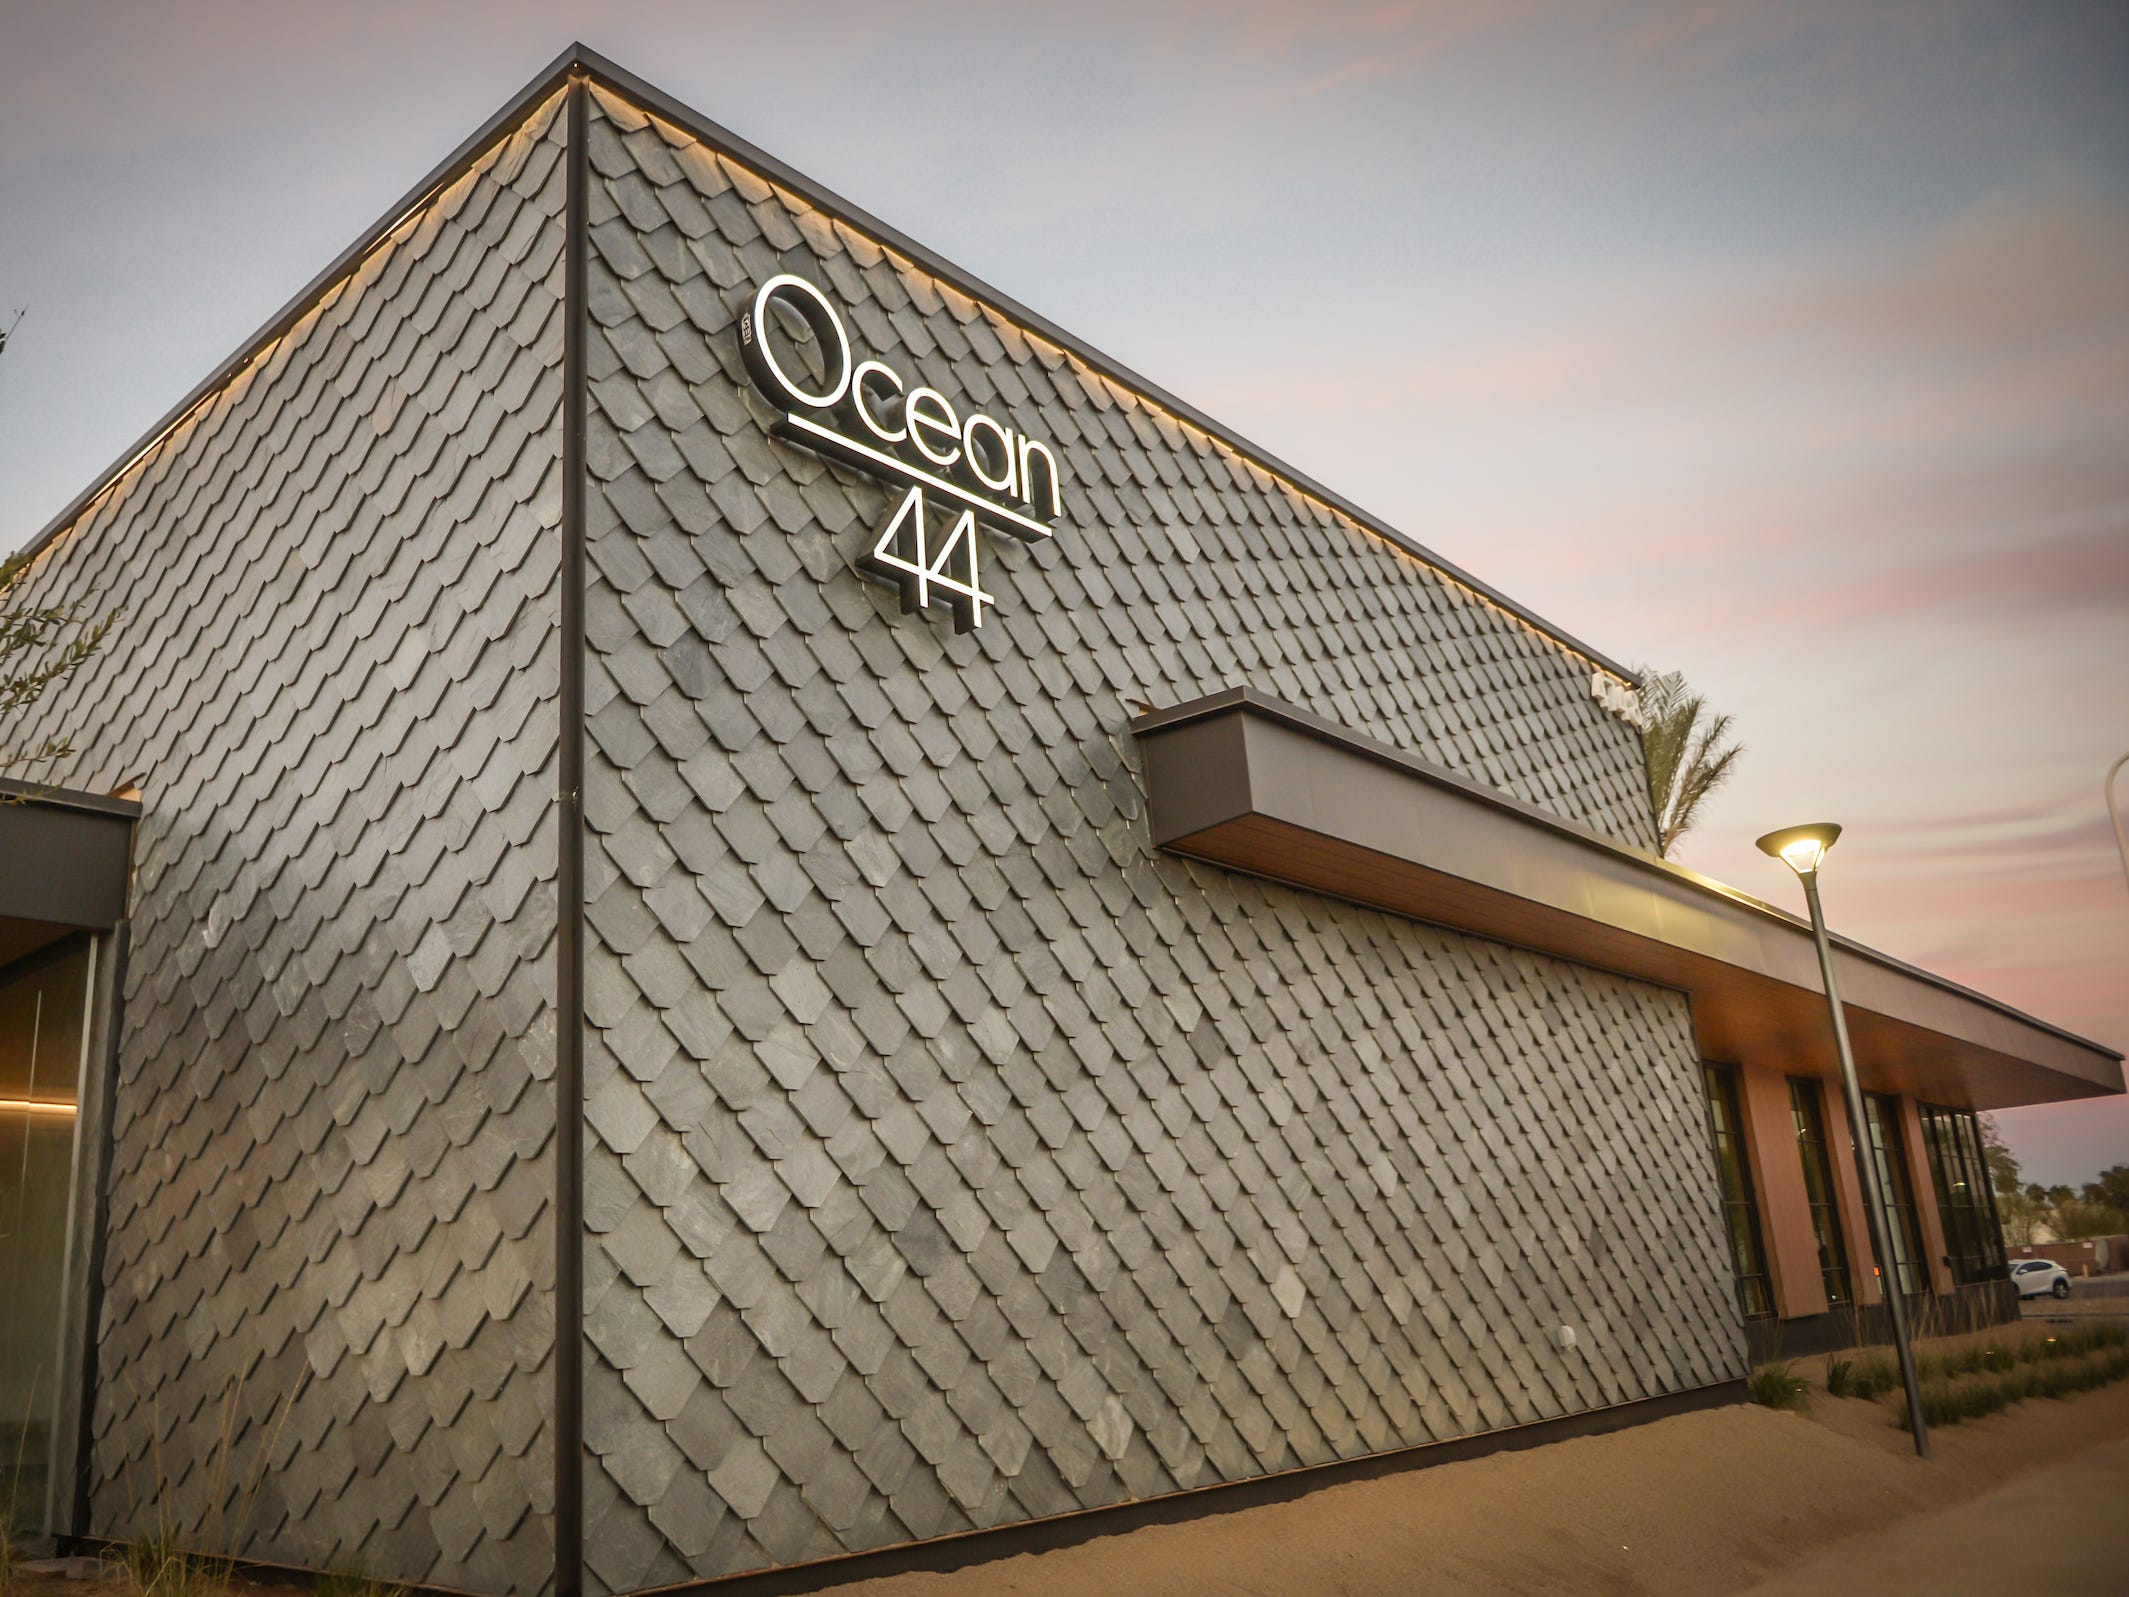 The exterior of Ocean 44 in Scottsdale, near Scottsdale Fashion Square.